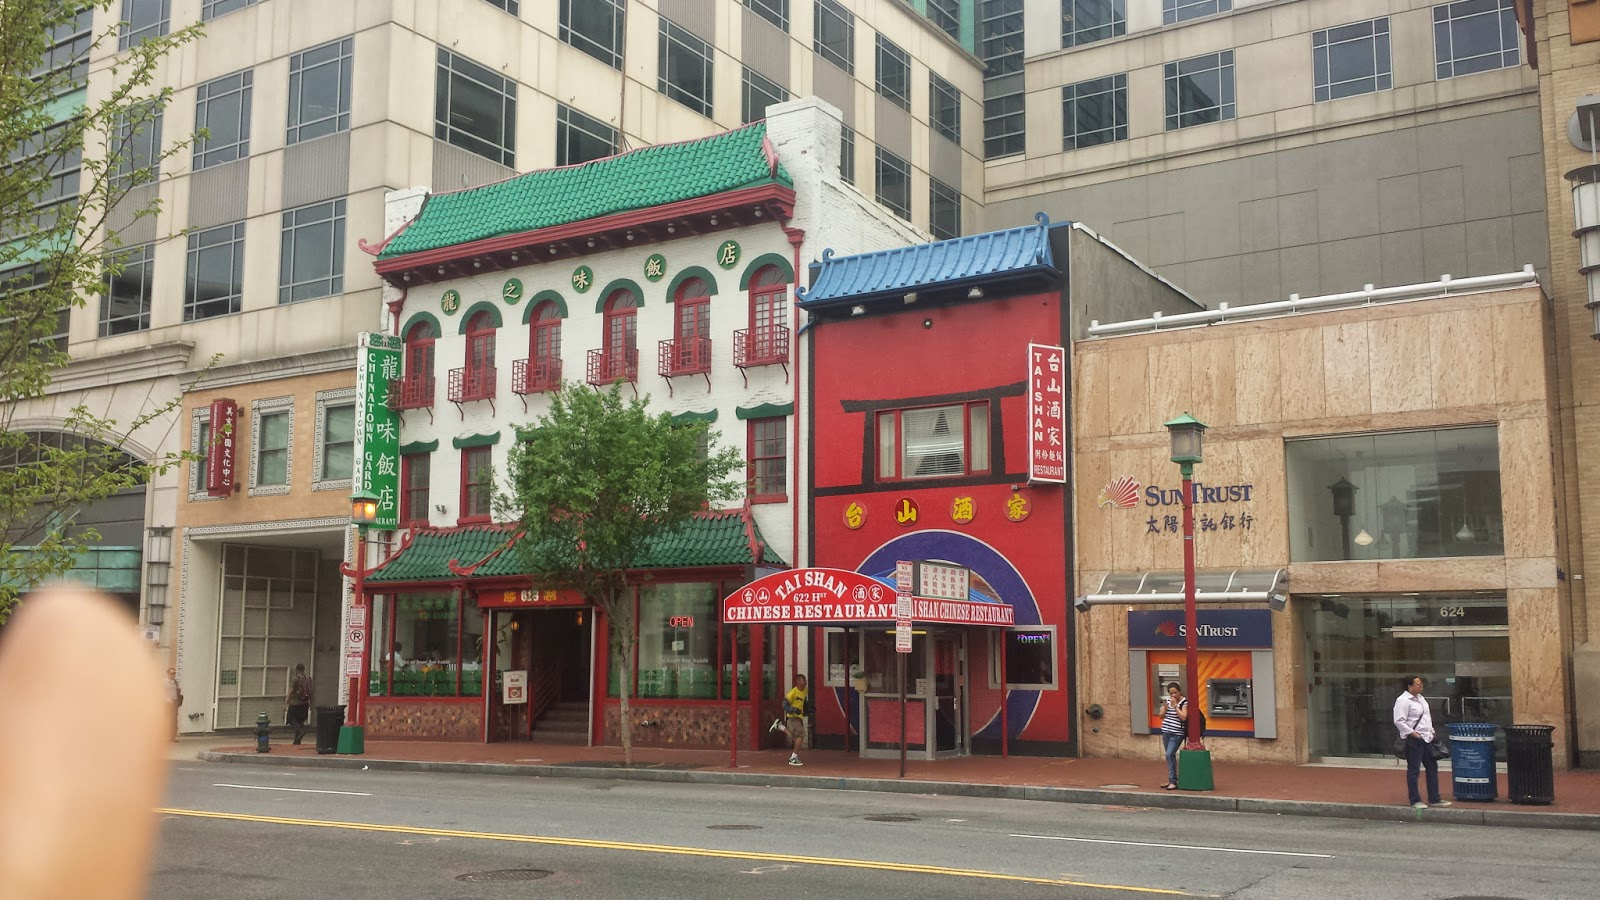 I Consider It One Of The Best Areas In Dc To Dine With Numerous Restaurants Cafes And Outdoor Food Markets Chinatown Features From Various